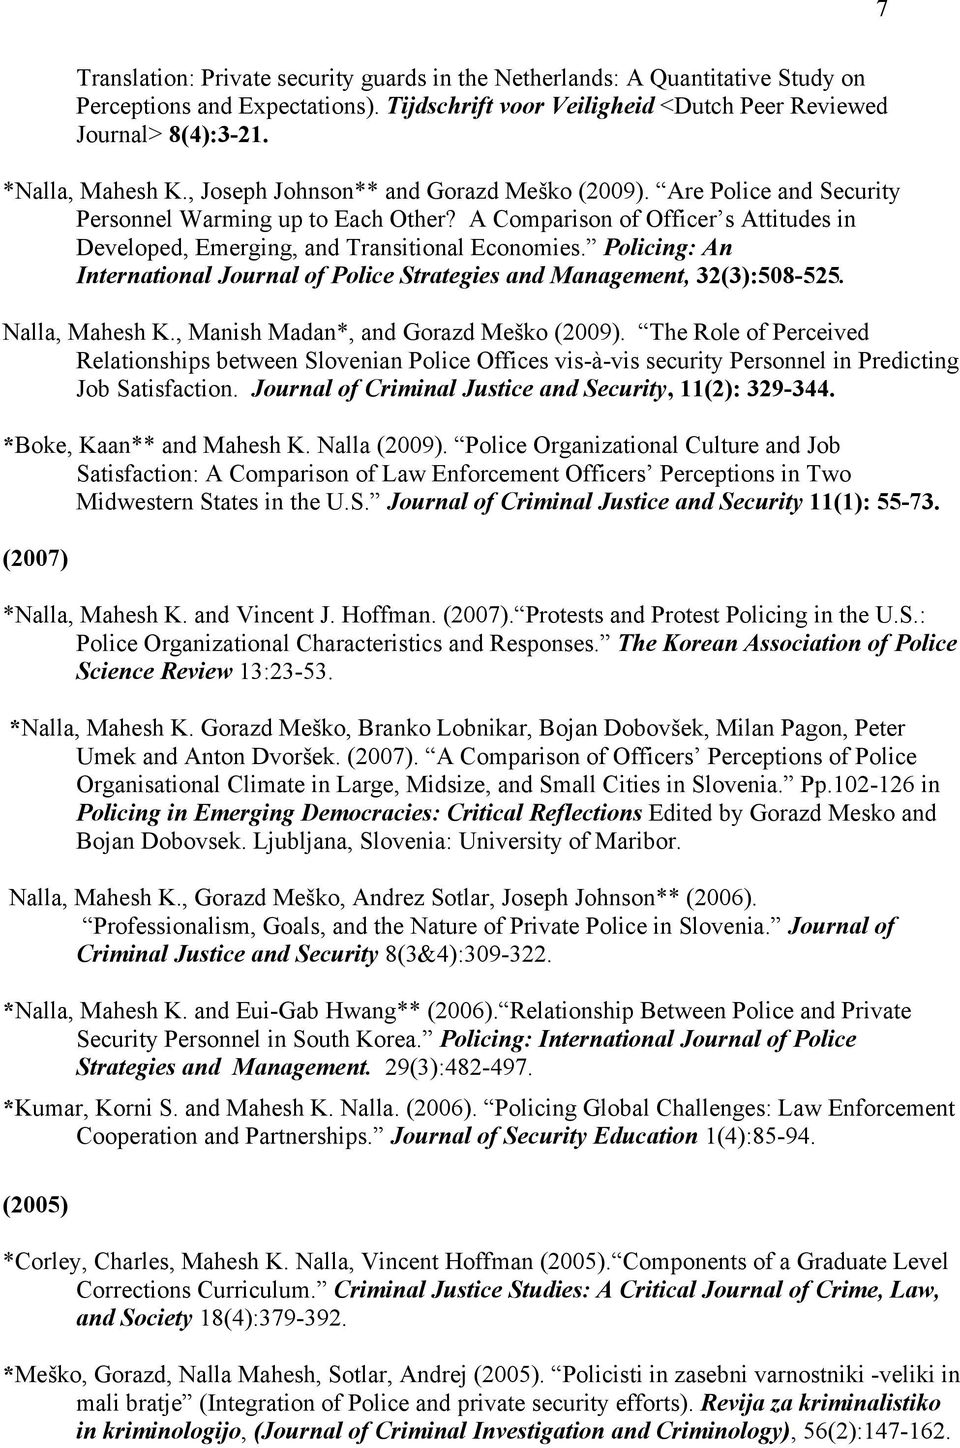 Policing: An International Journal of Police Strategies and Management, 32(3):508-525. Nalla, Mahesh K., Manish Madan*, and Gorazd Meško (2009).